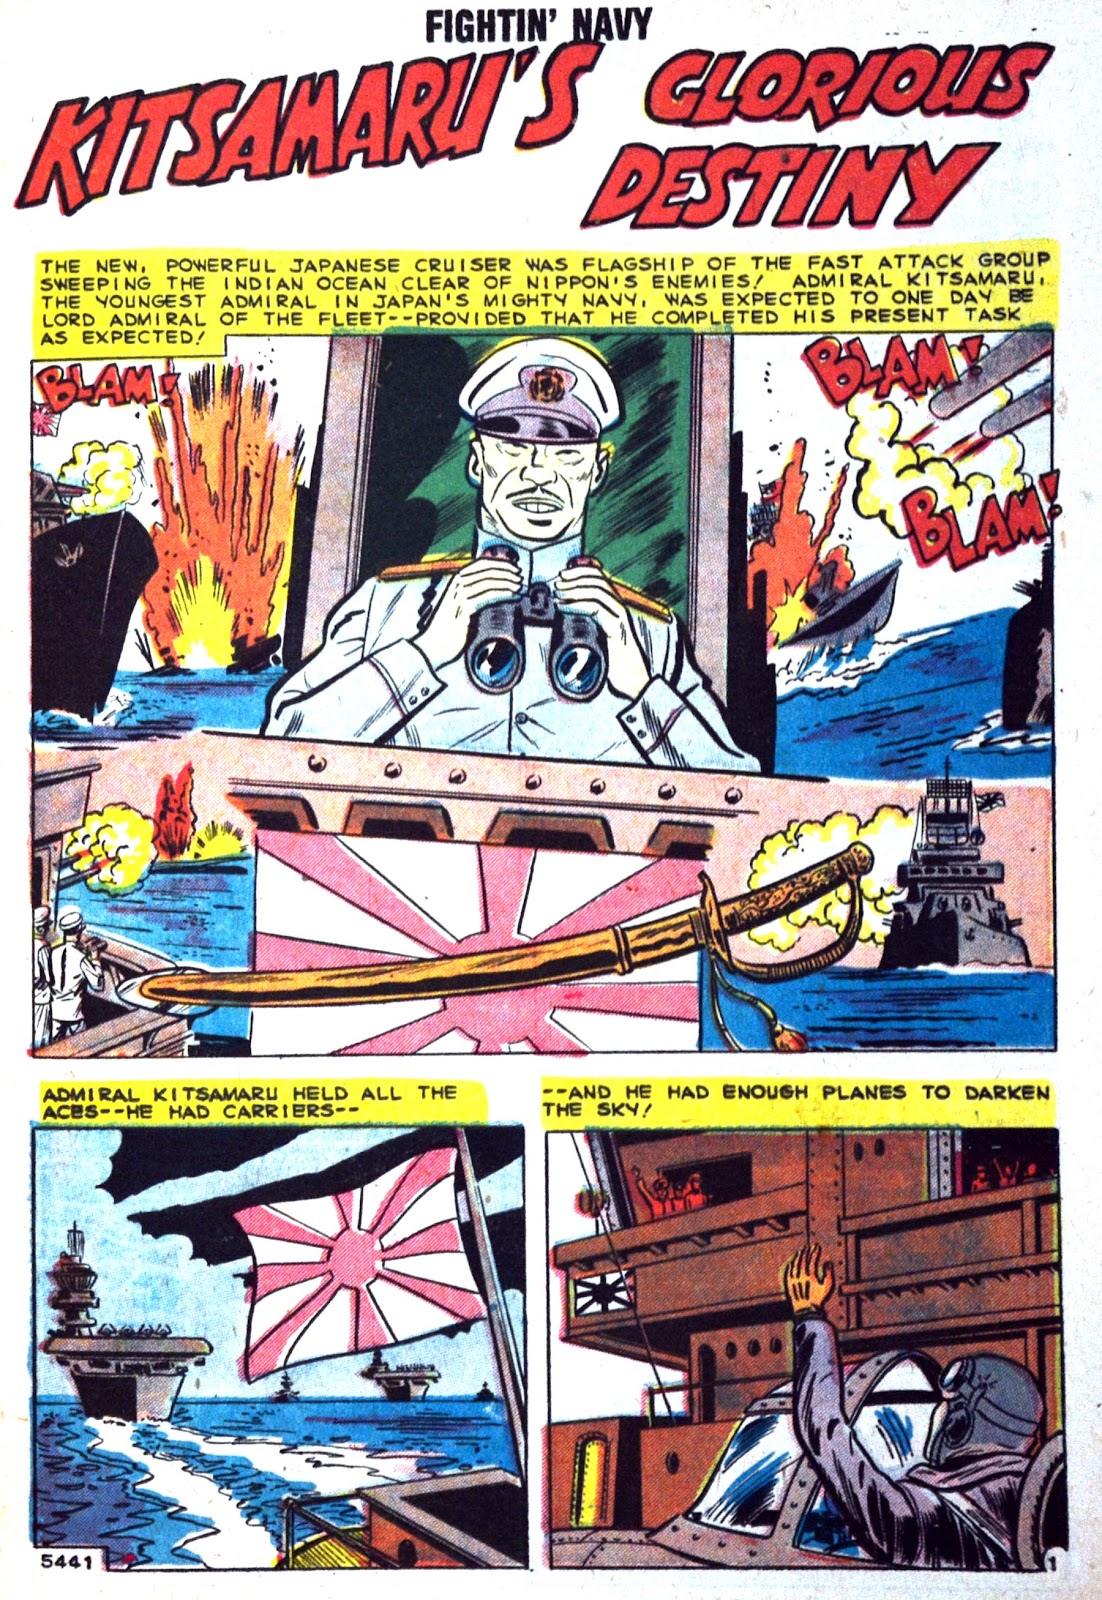 Read online Fightin' Navy comic -  Issue #89 - 19